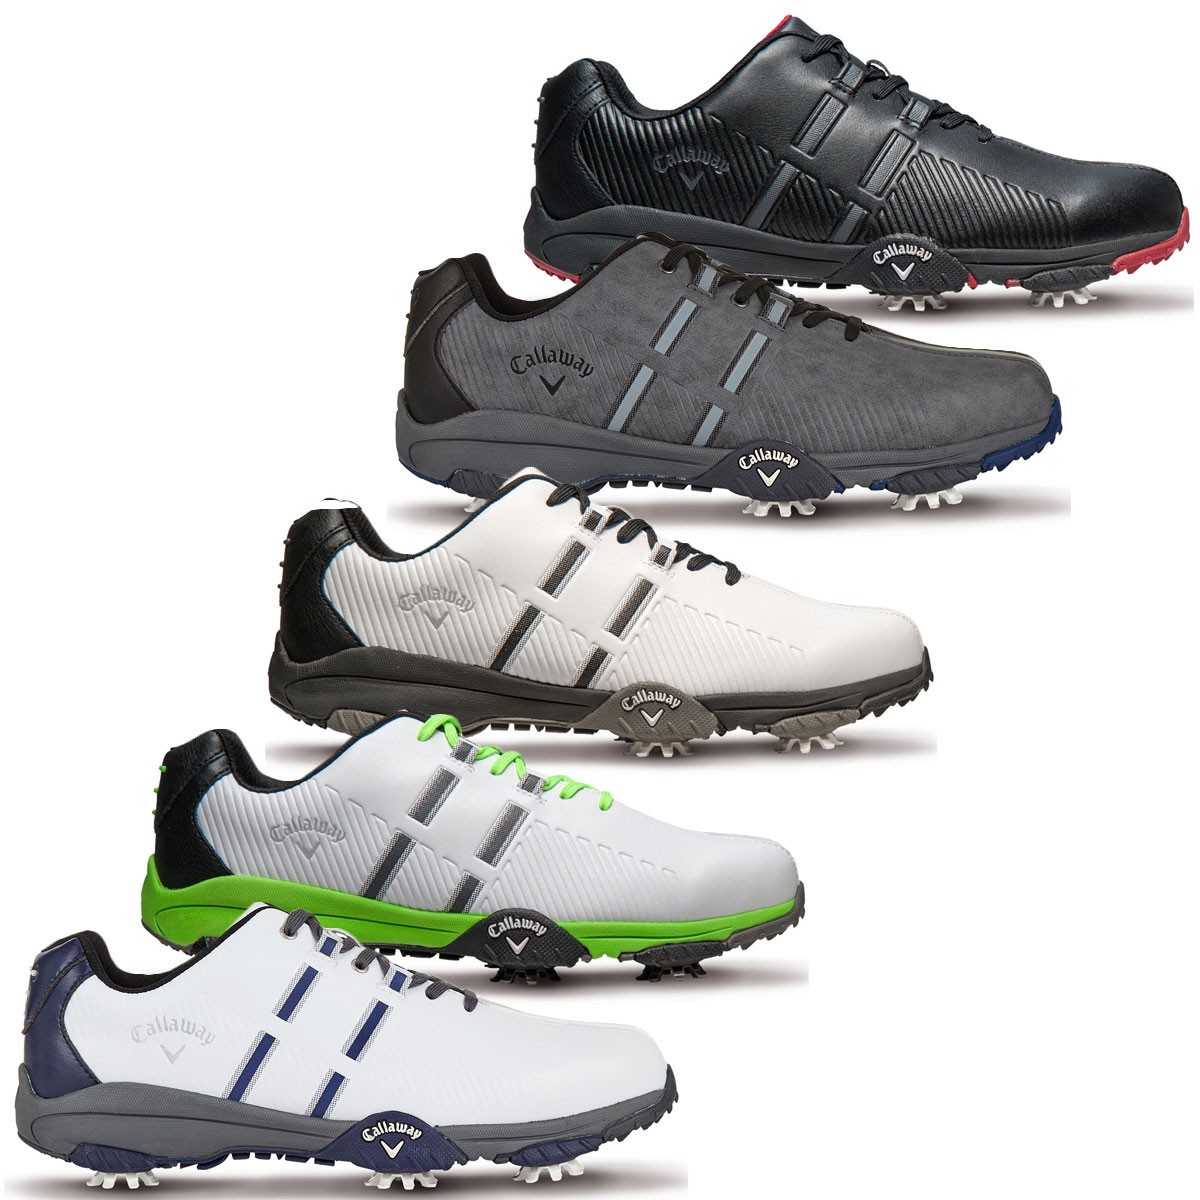 Callaway Chev Multi Mens Golf Shoes Review